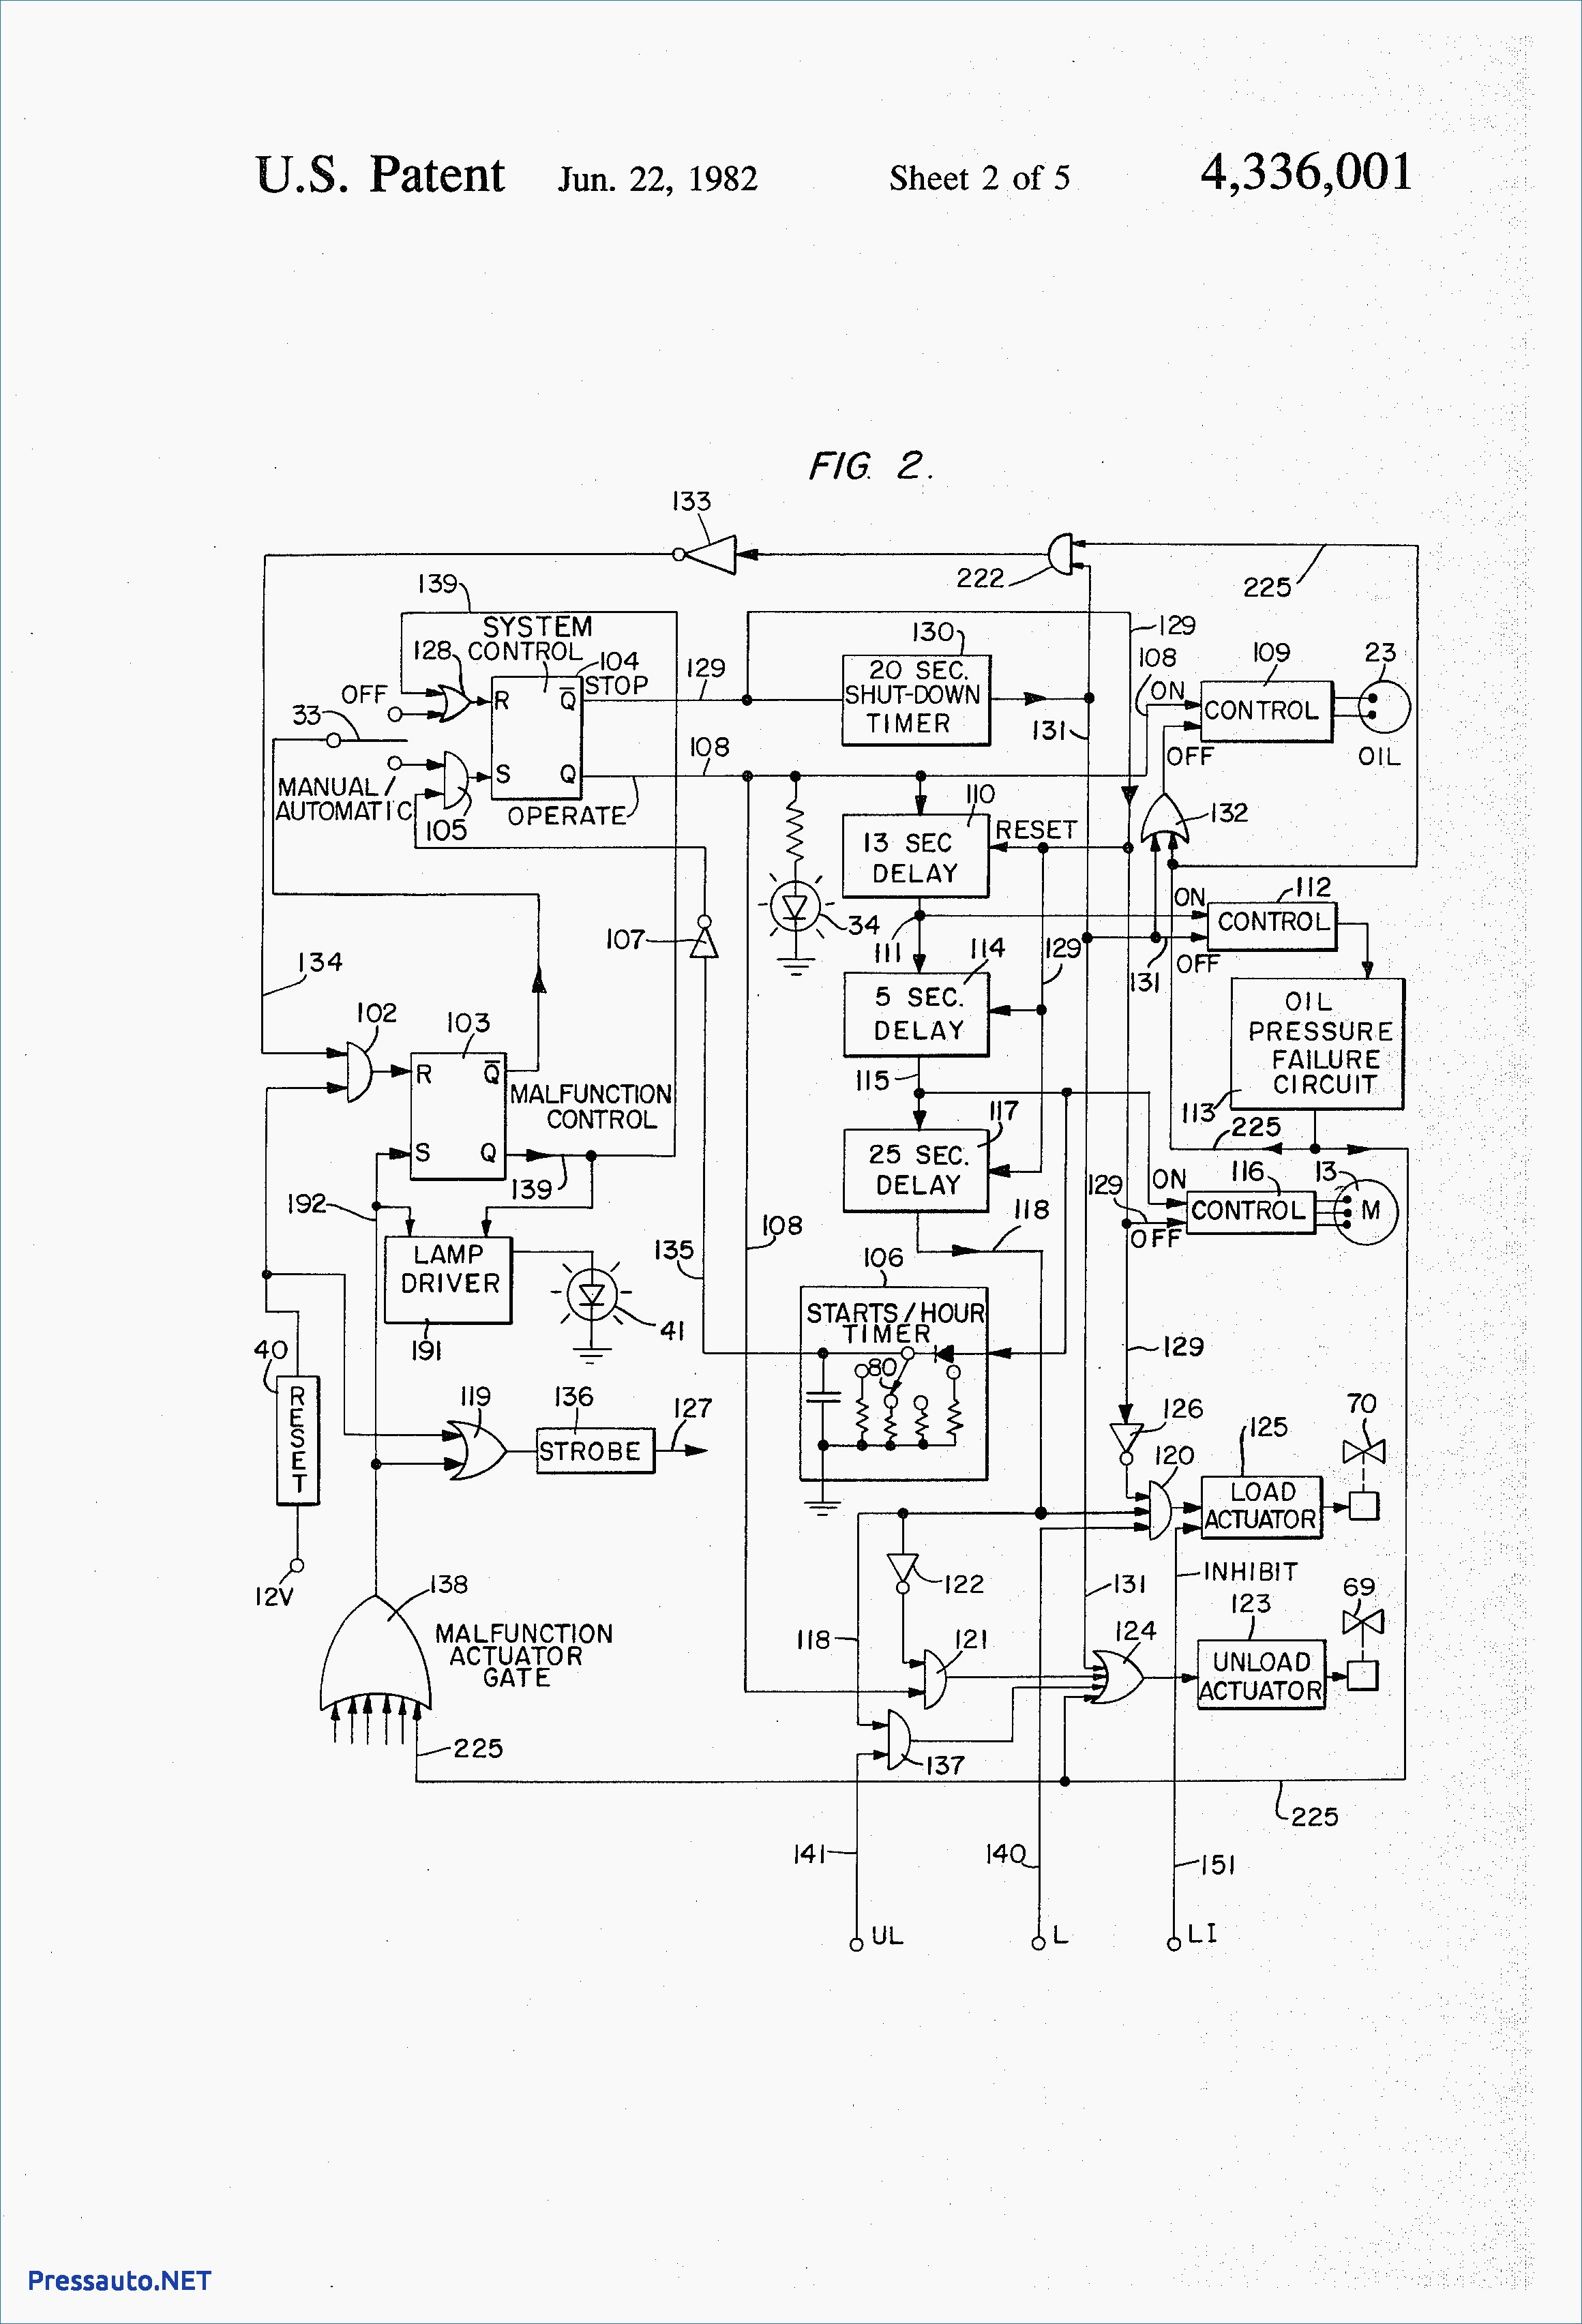 ingersoll rand air compressor wiring diagram Collection-Ingersoll Rand Air pressor Wiring Diagram Lovely Charming K Z Durango Wiring Diagram Contemporary Electrical 12-o